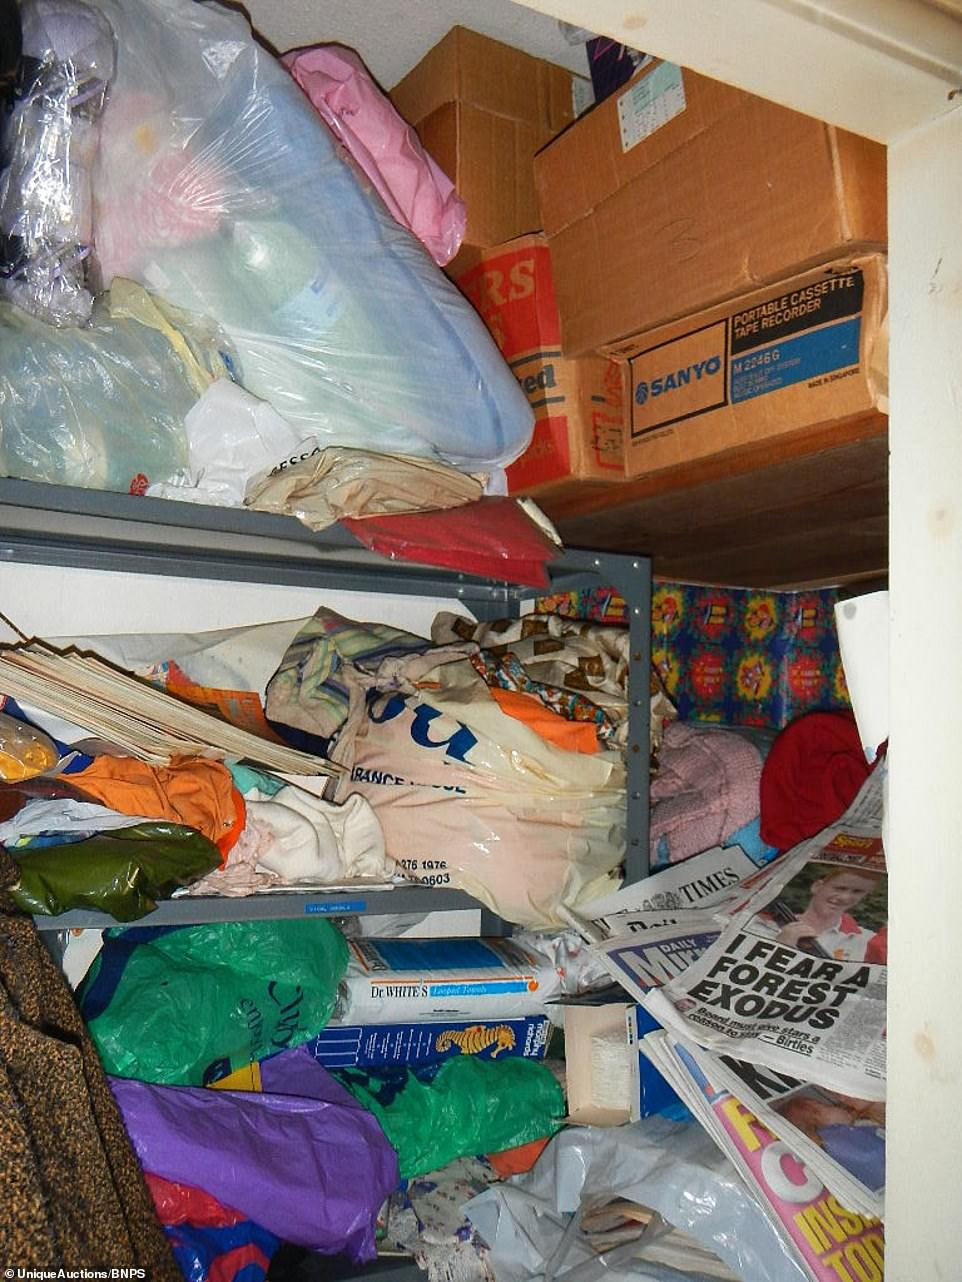 Items stuffed into a cupboard. The auctioneerscouldn't get in through the front door so were forced to go around the back